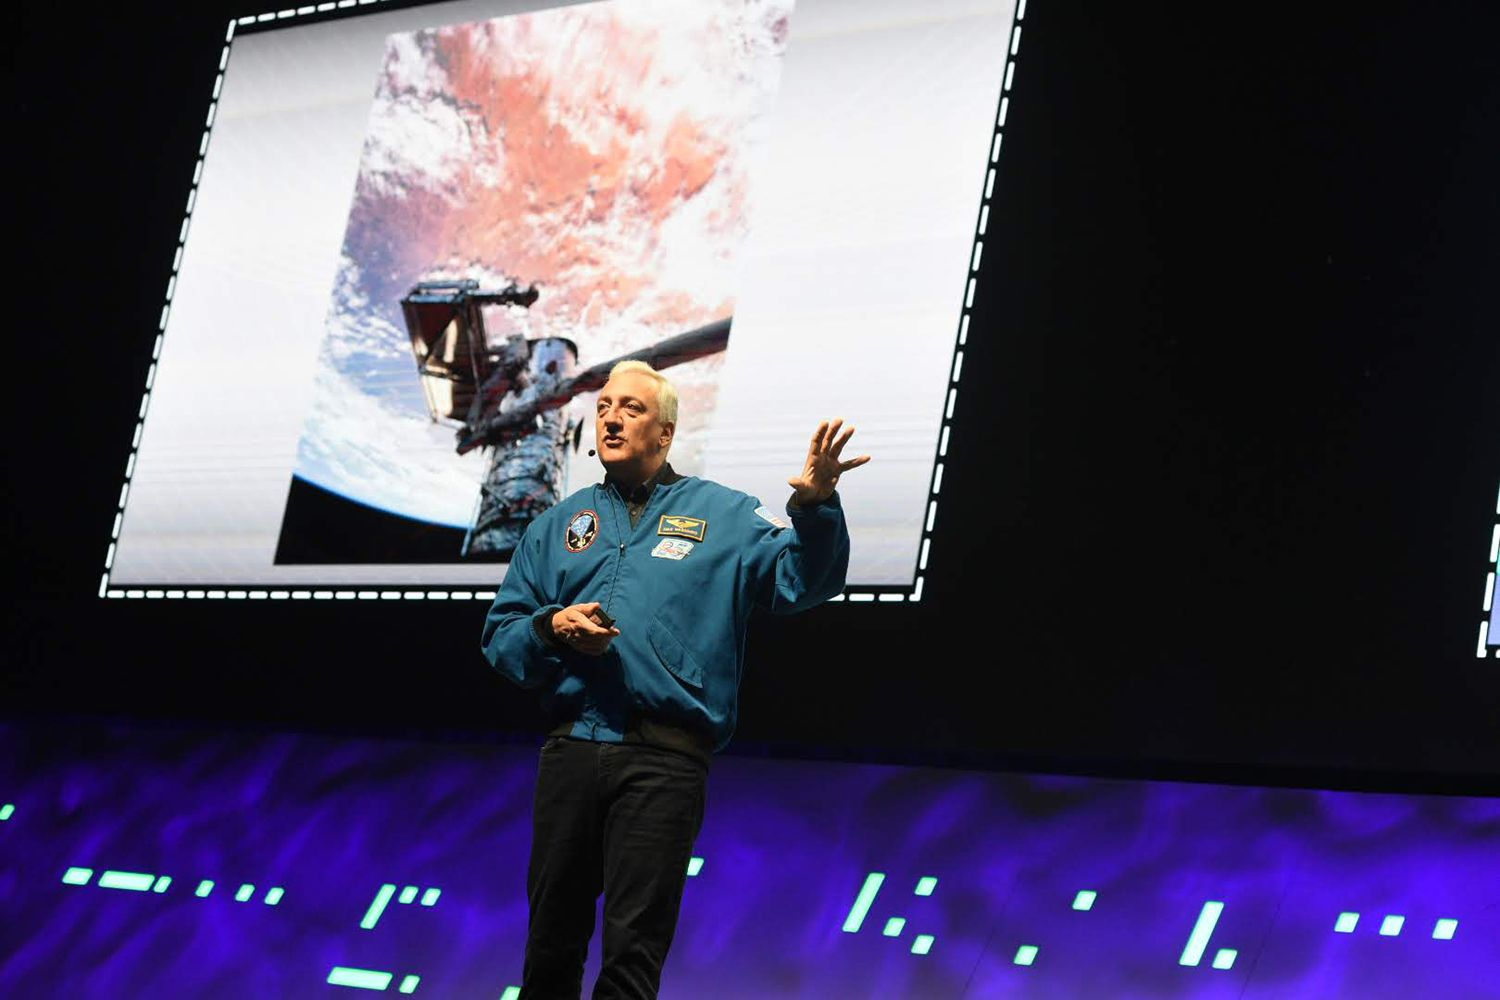 Zoomtopia 2019: Mike Massimino